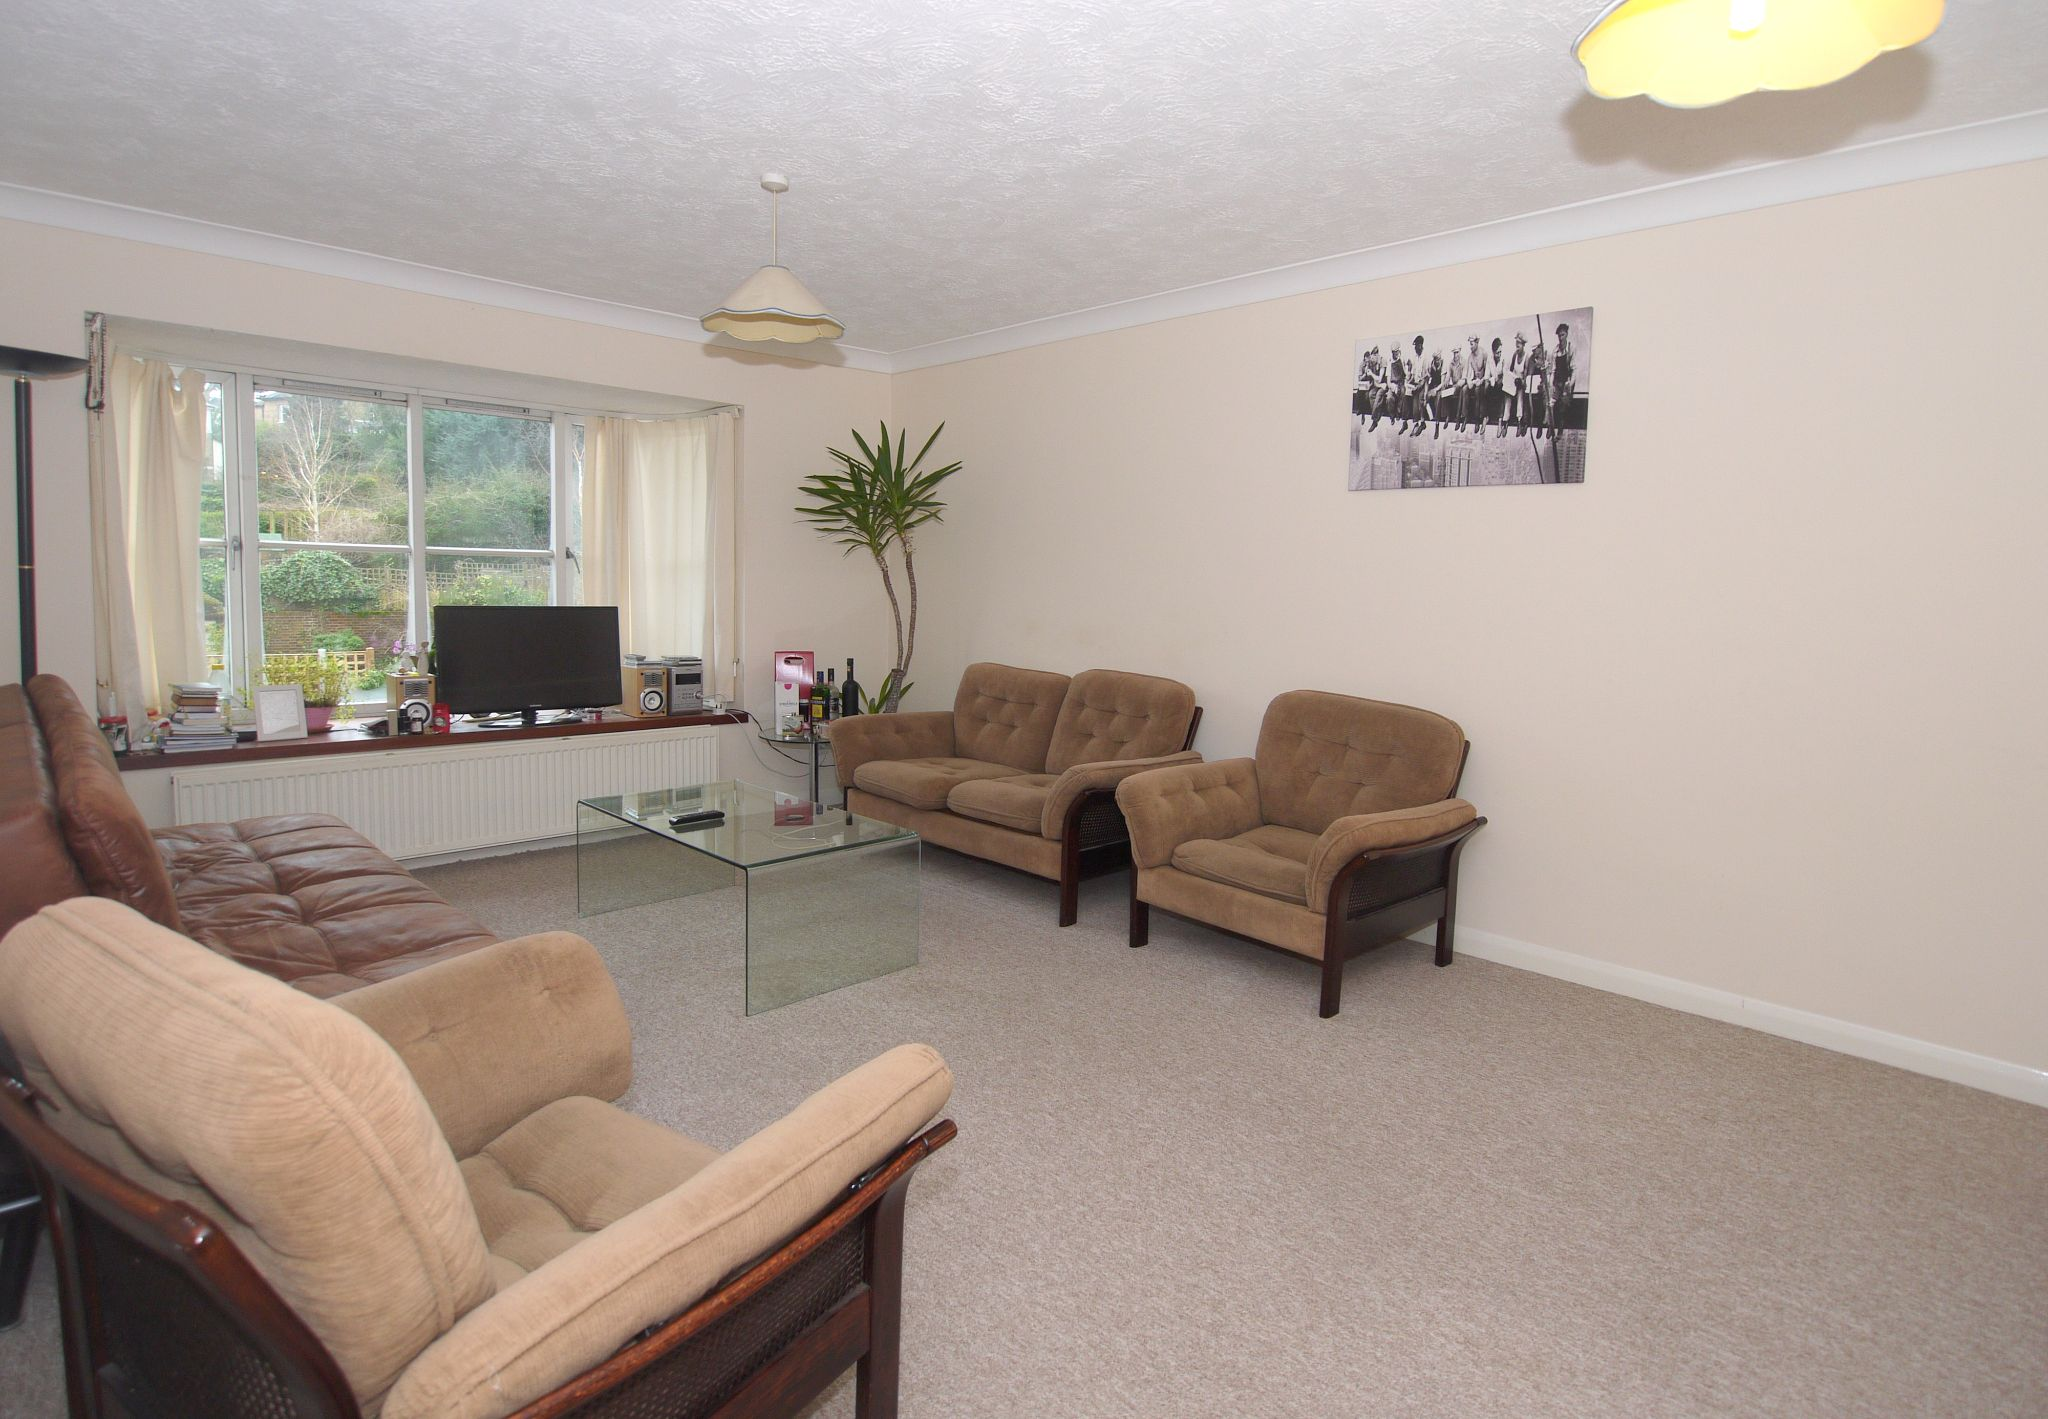 2 bedroom flat flat/apartment For Sale in Sevenoaks - Property photograph